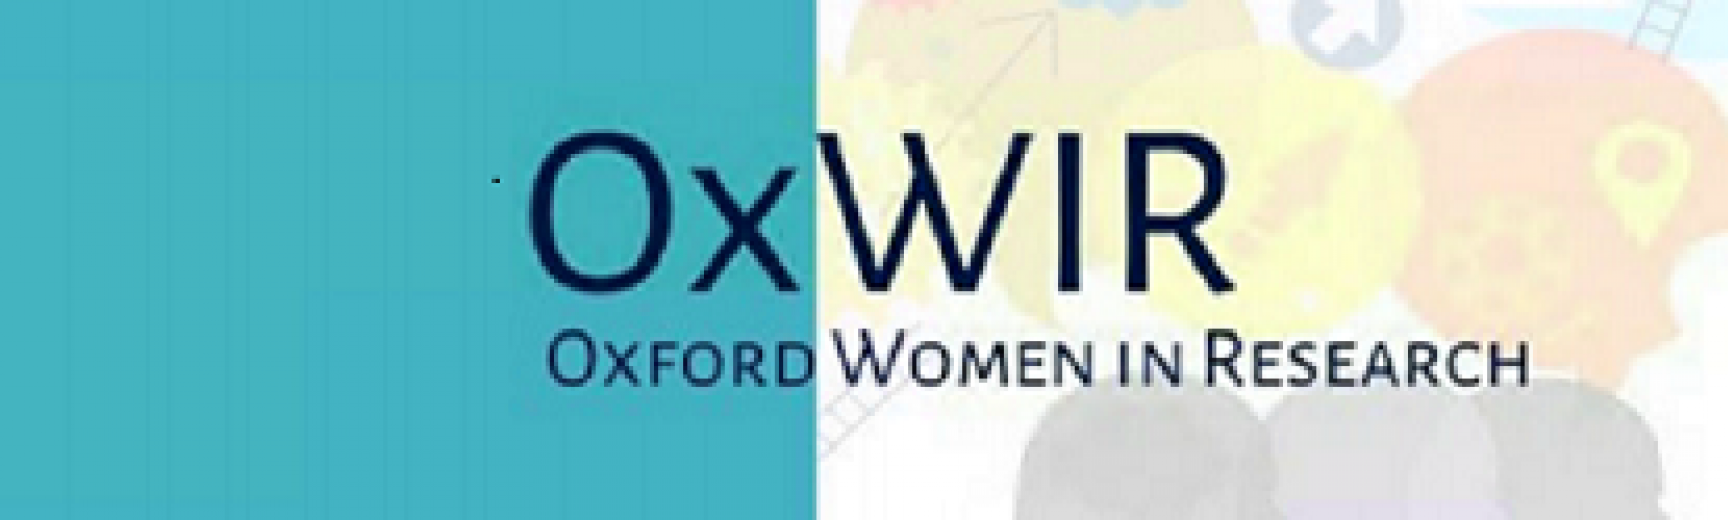 oxford women in research